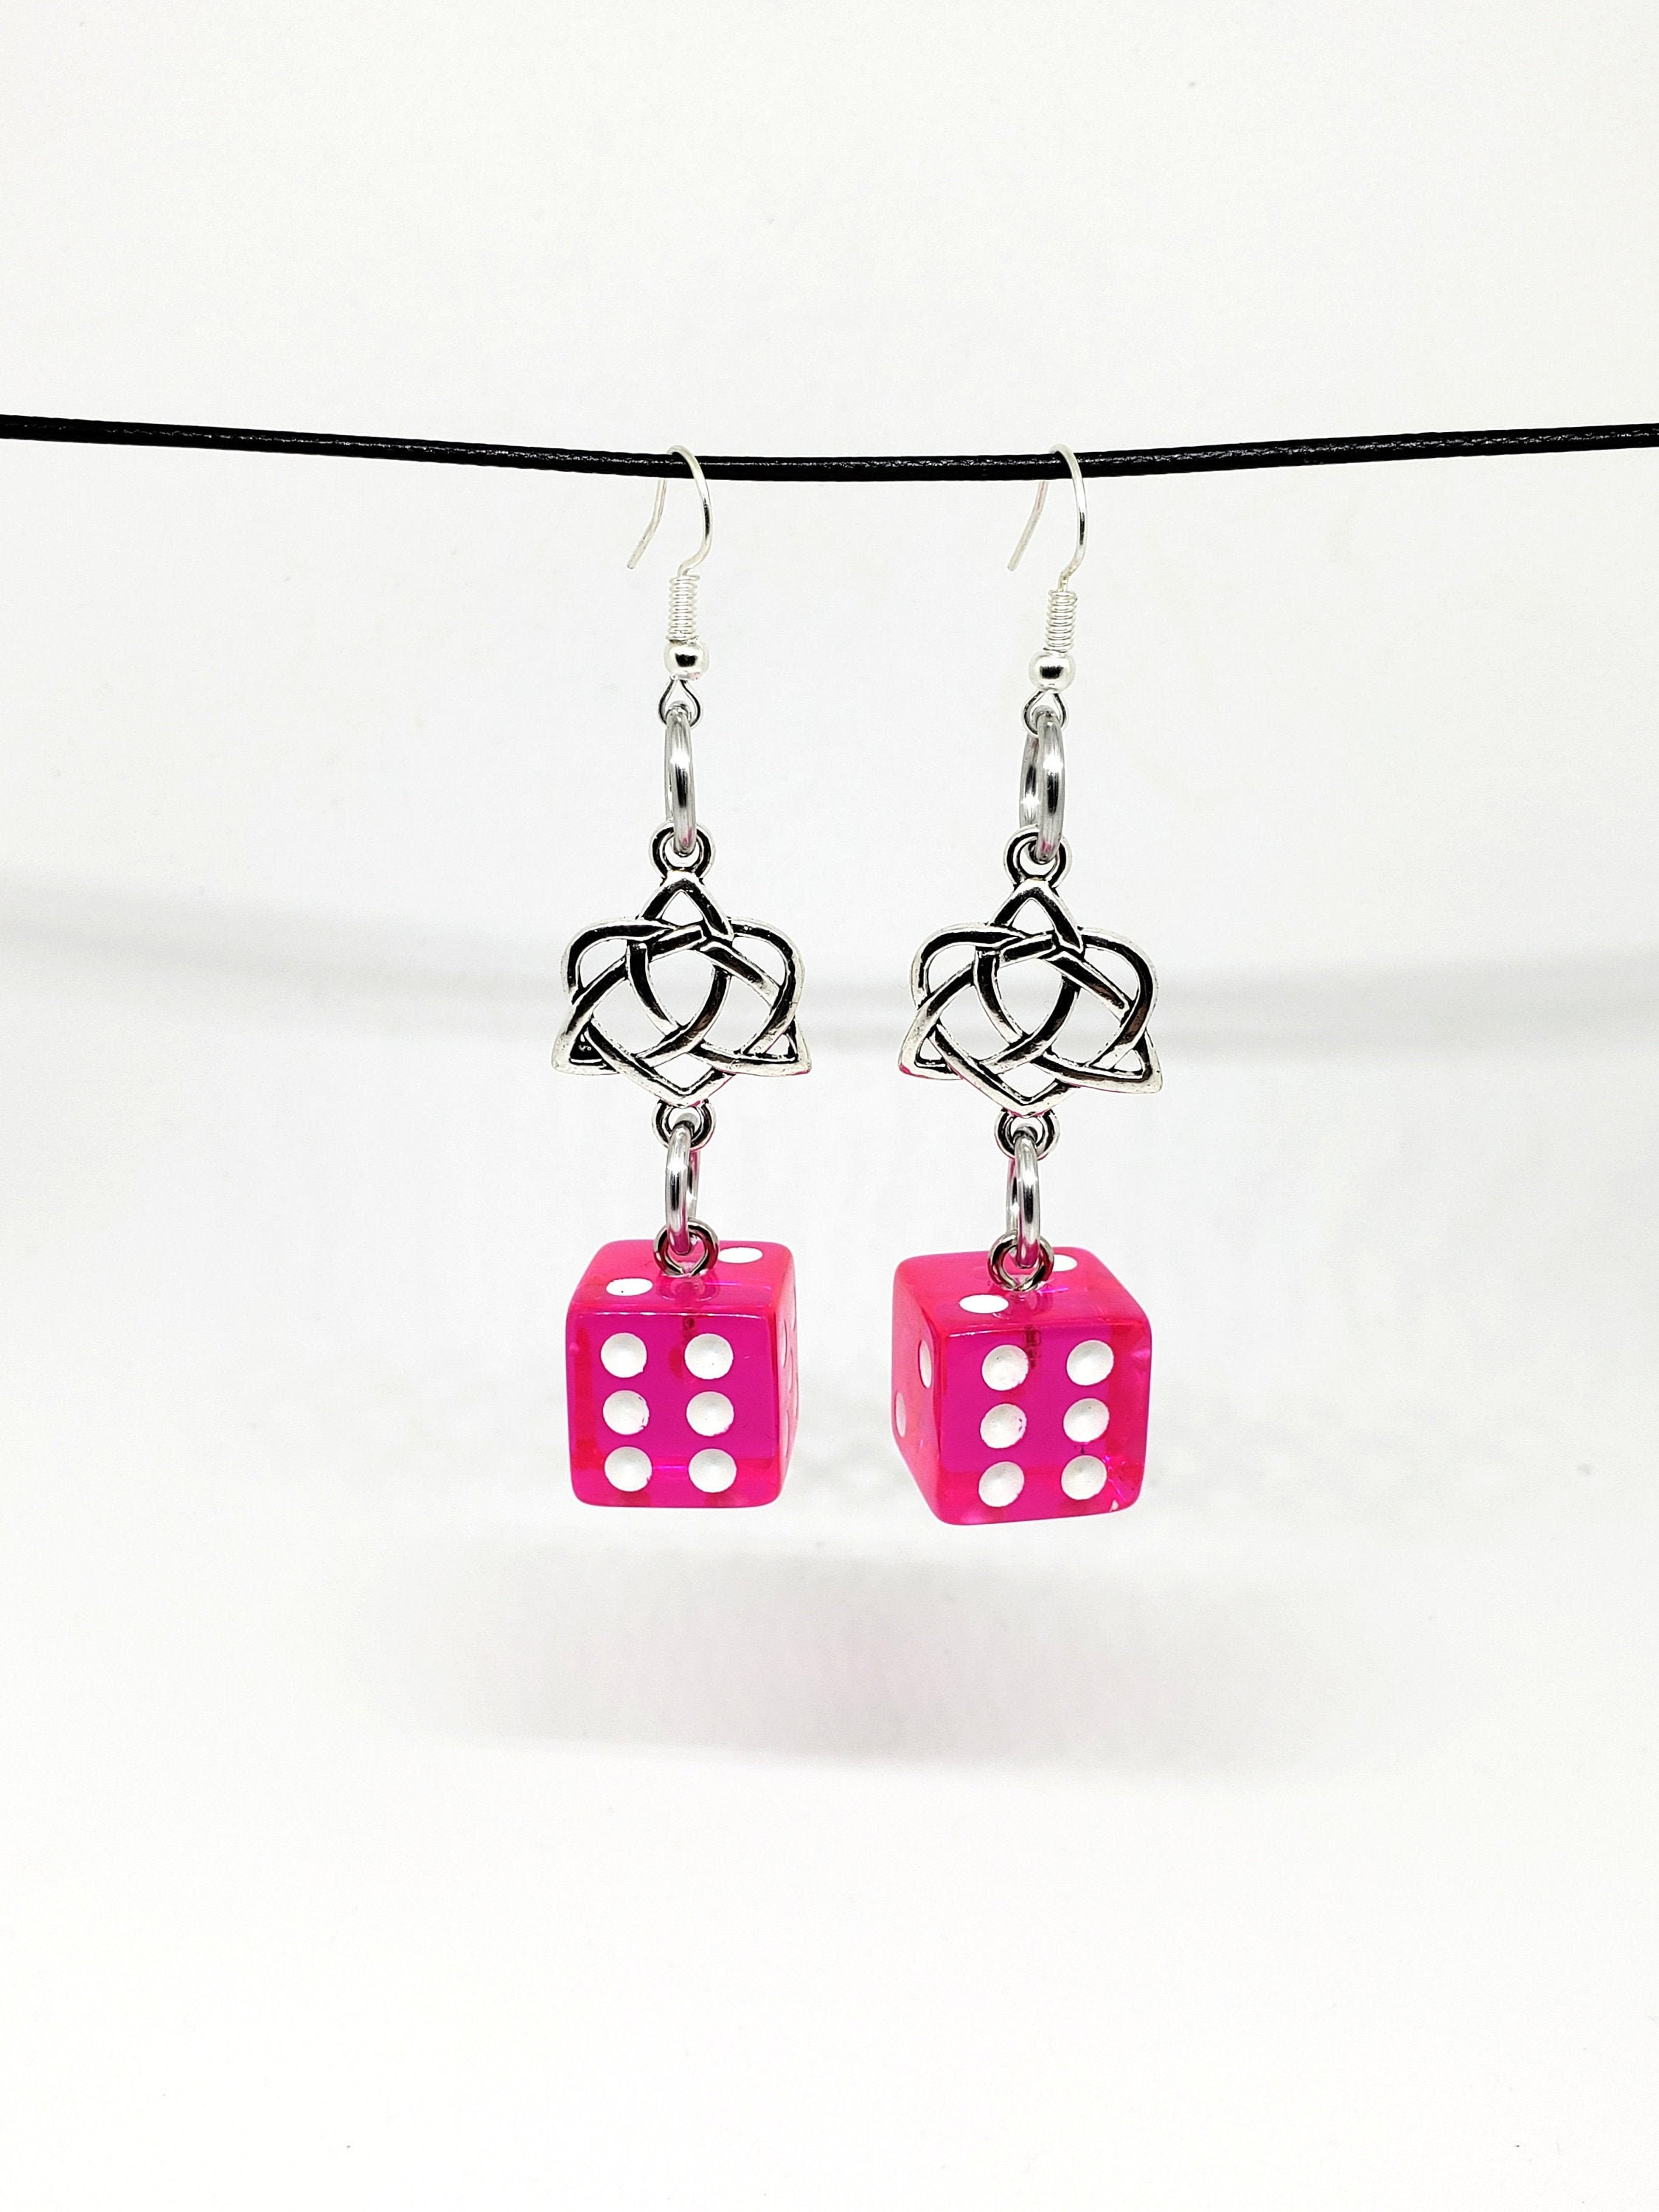 Translucent Hot Pink and White Pipped Dice Earrings with